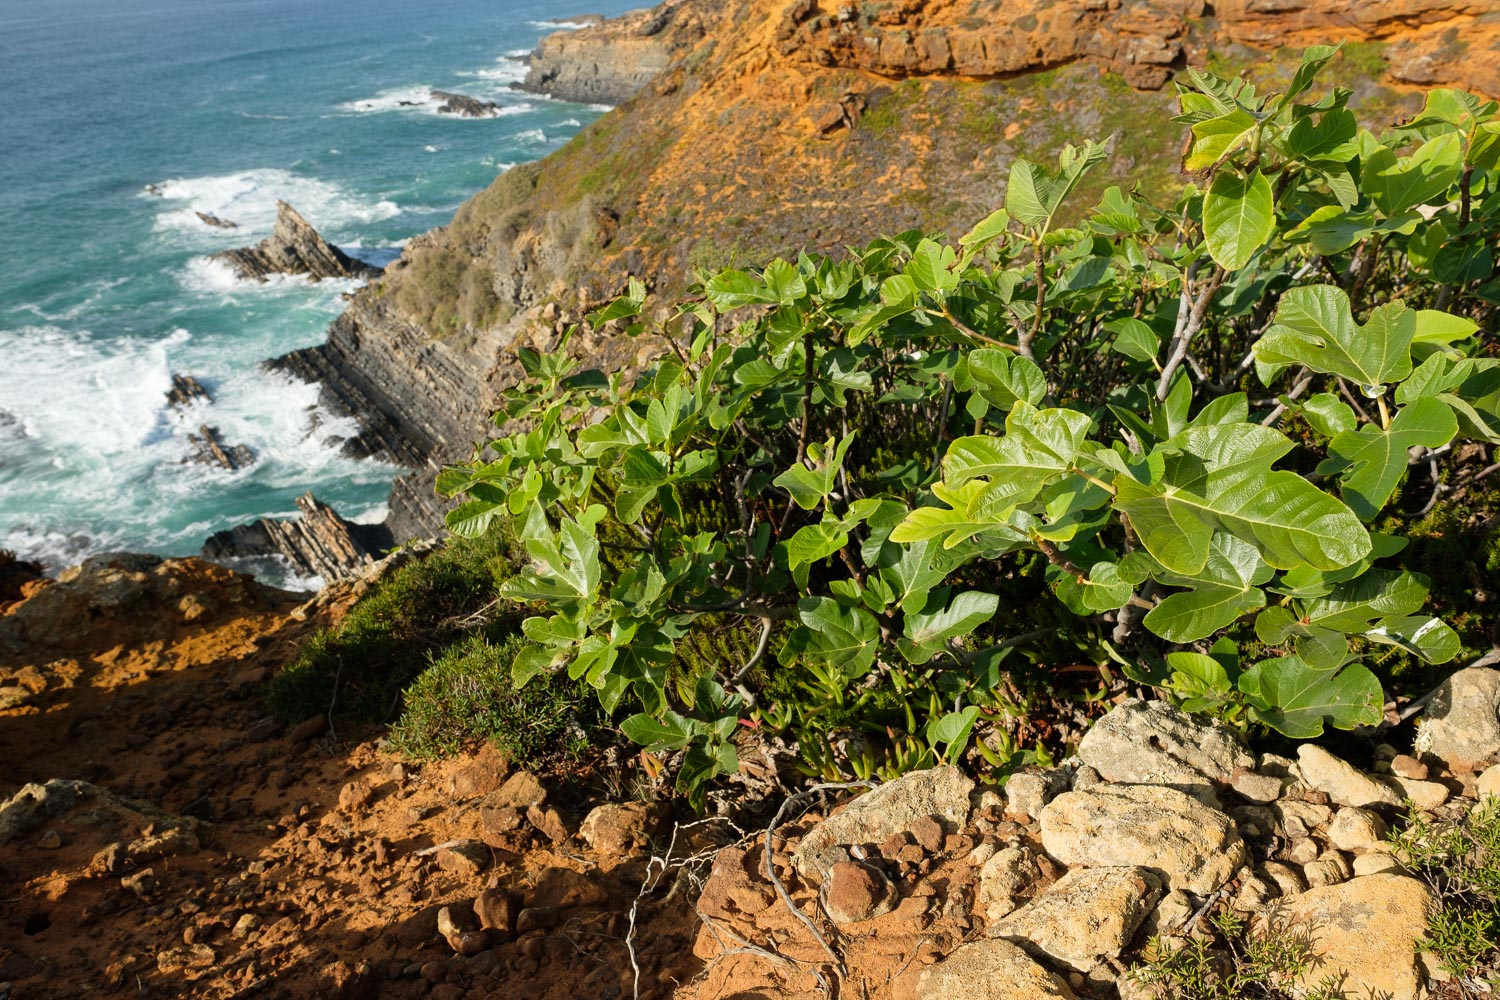 Small fig trees in the cliffs